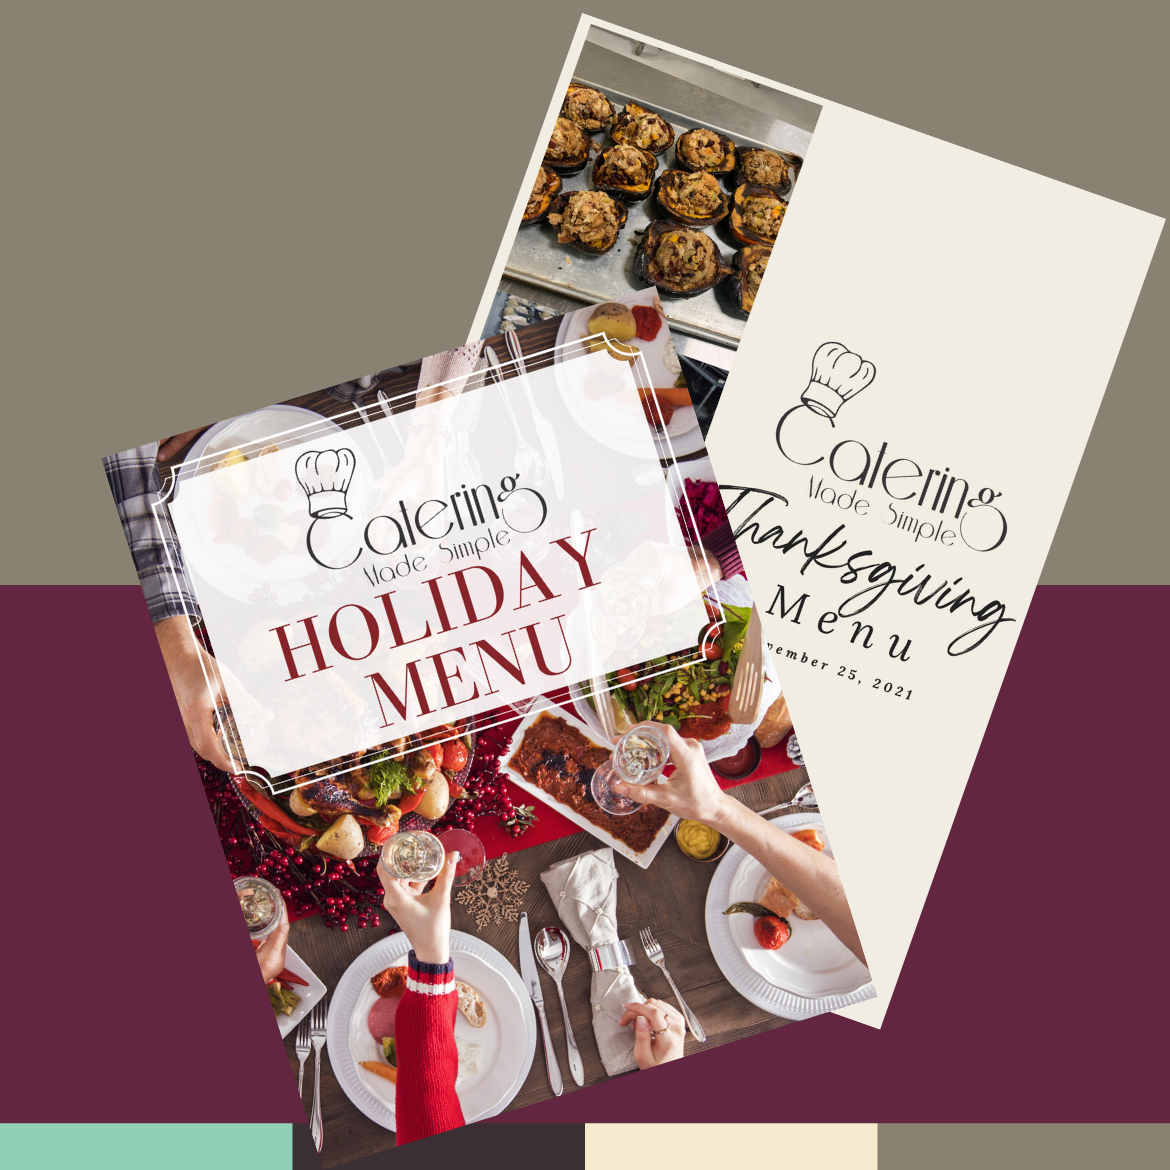 Catering Made Simple Holiday Menus